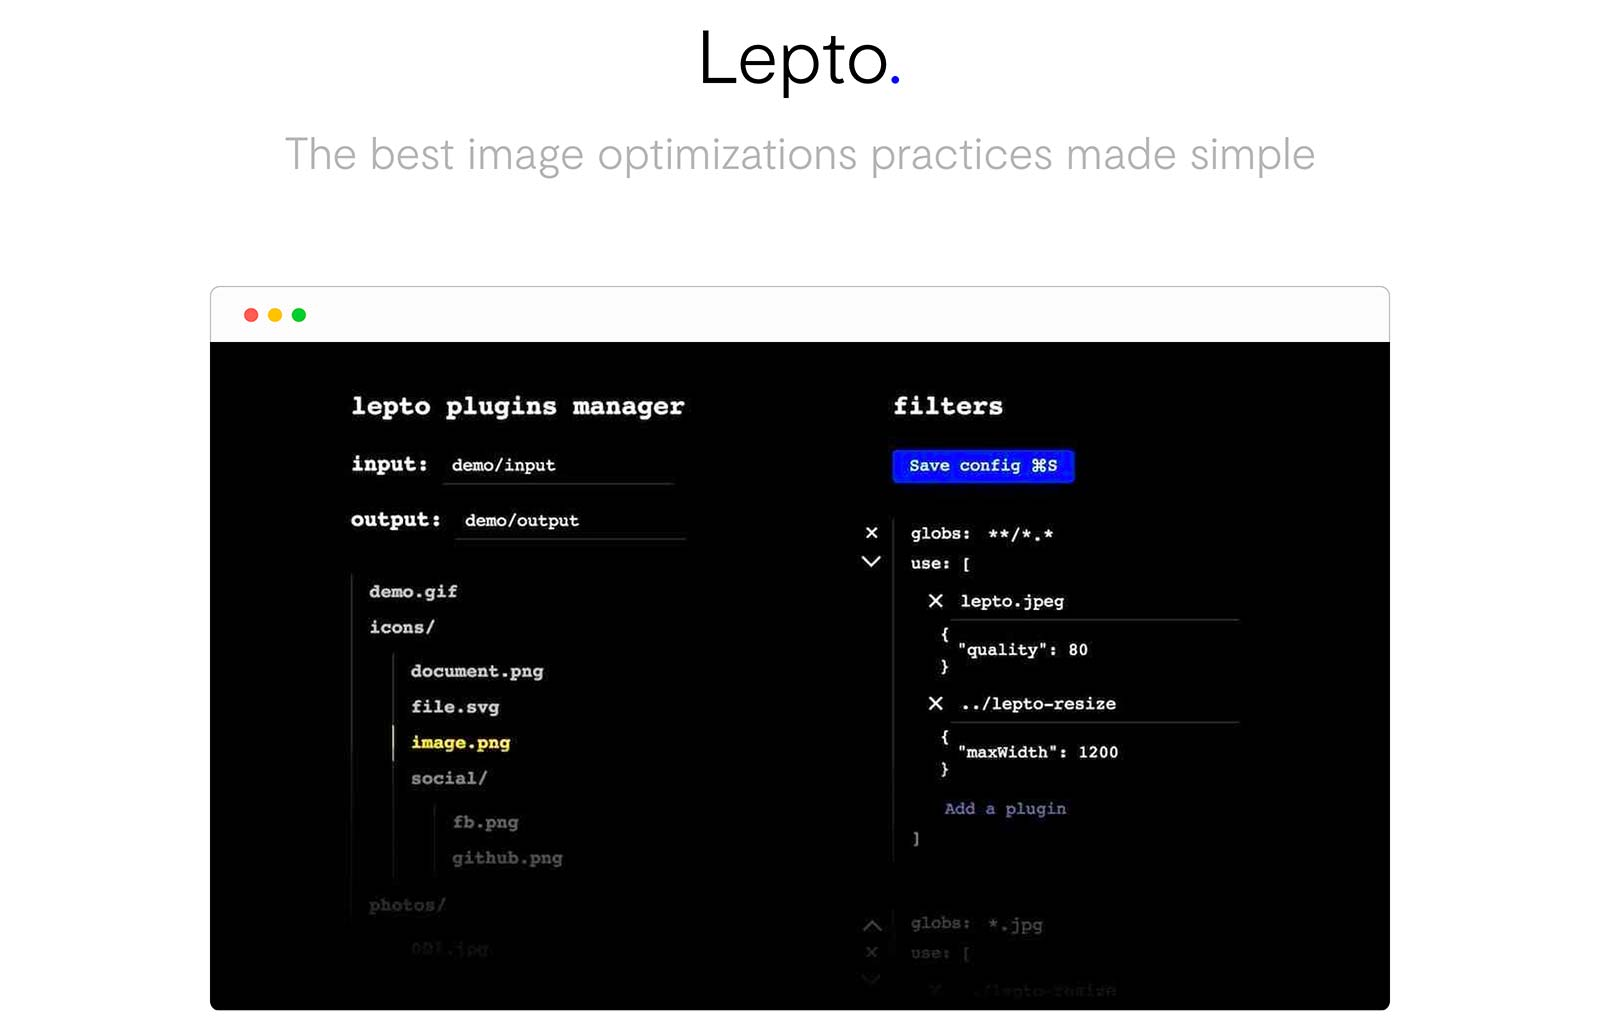 Lepto: The best image optimizations practices made simple